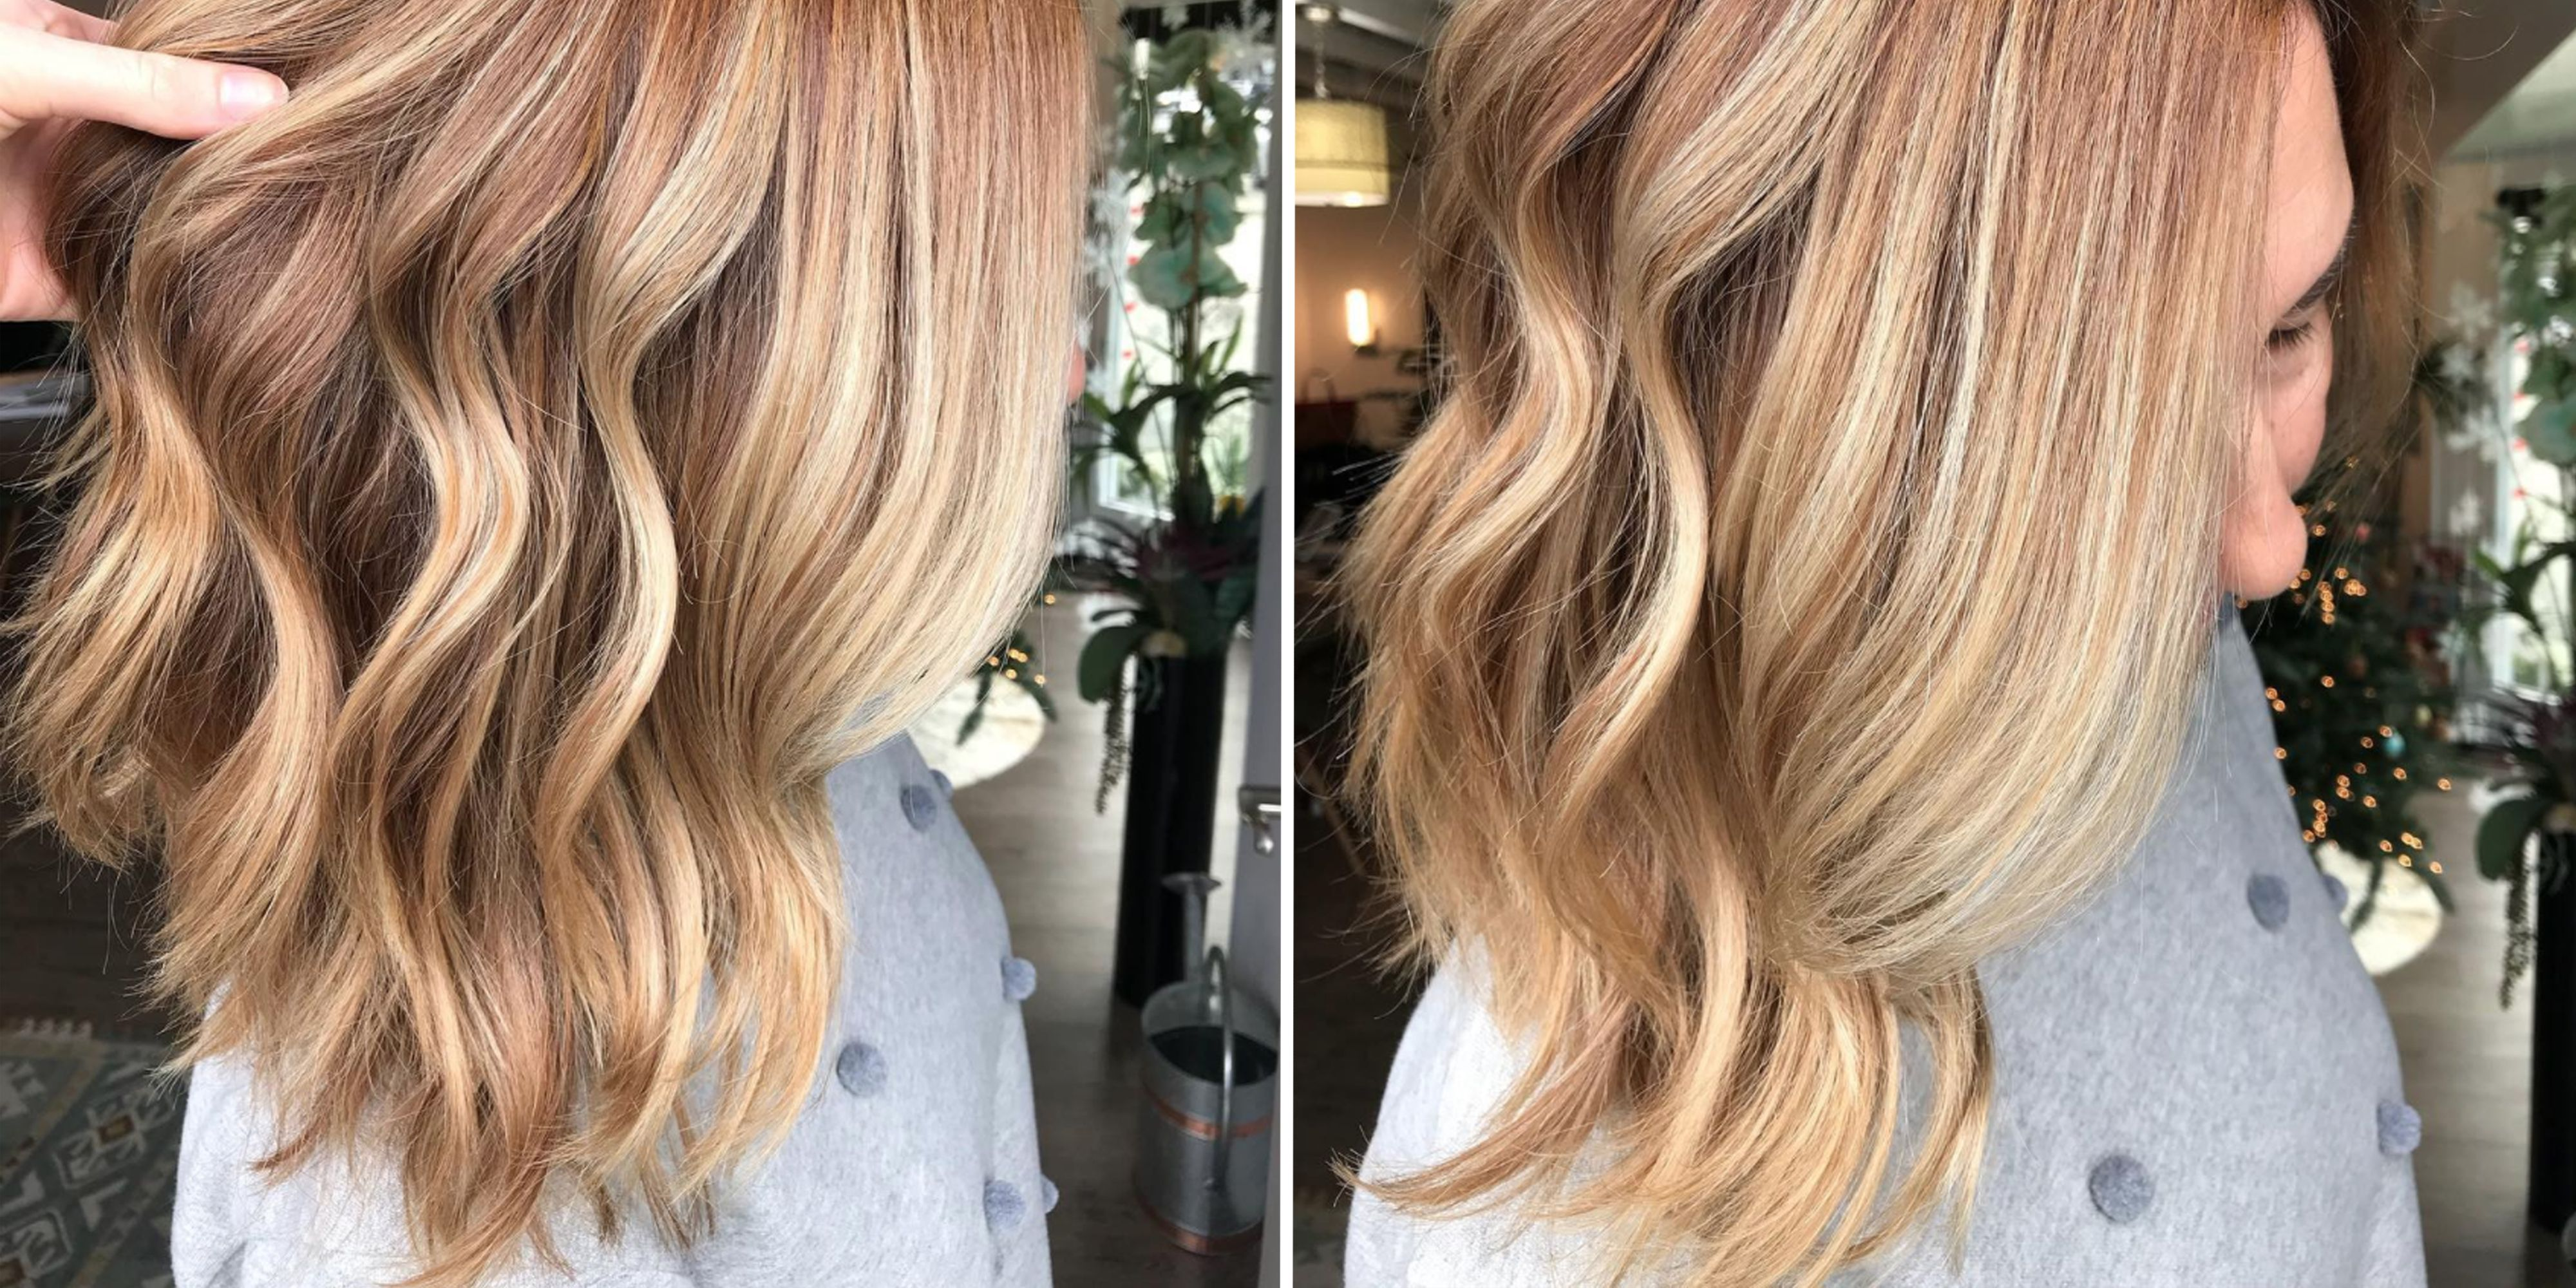 42 Shades of Blonde Hair The Ultimate Blonde Hair Color Guide